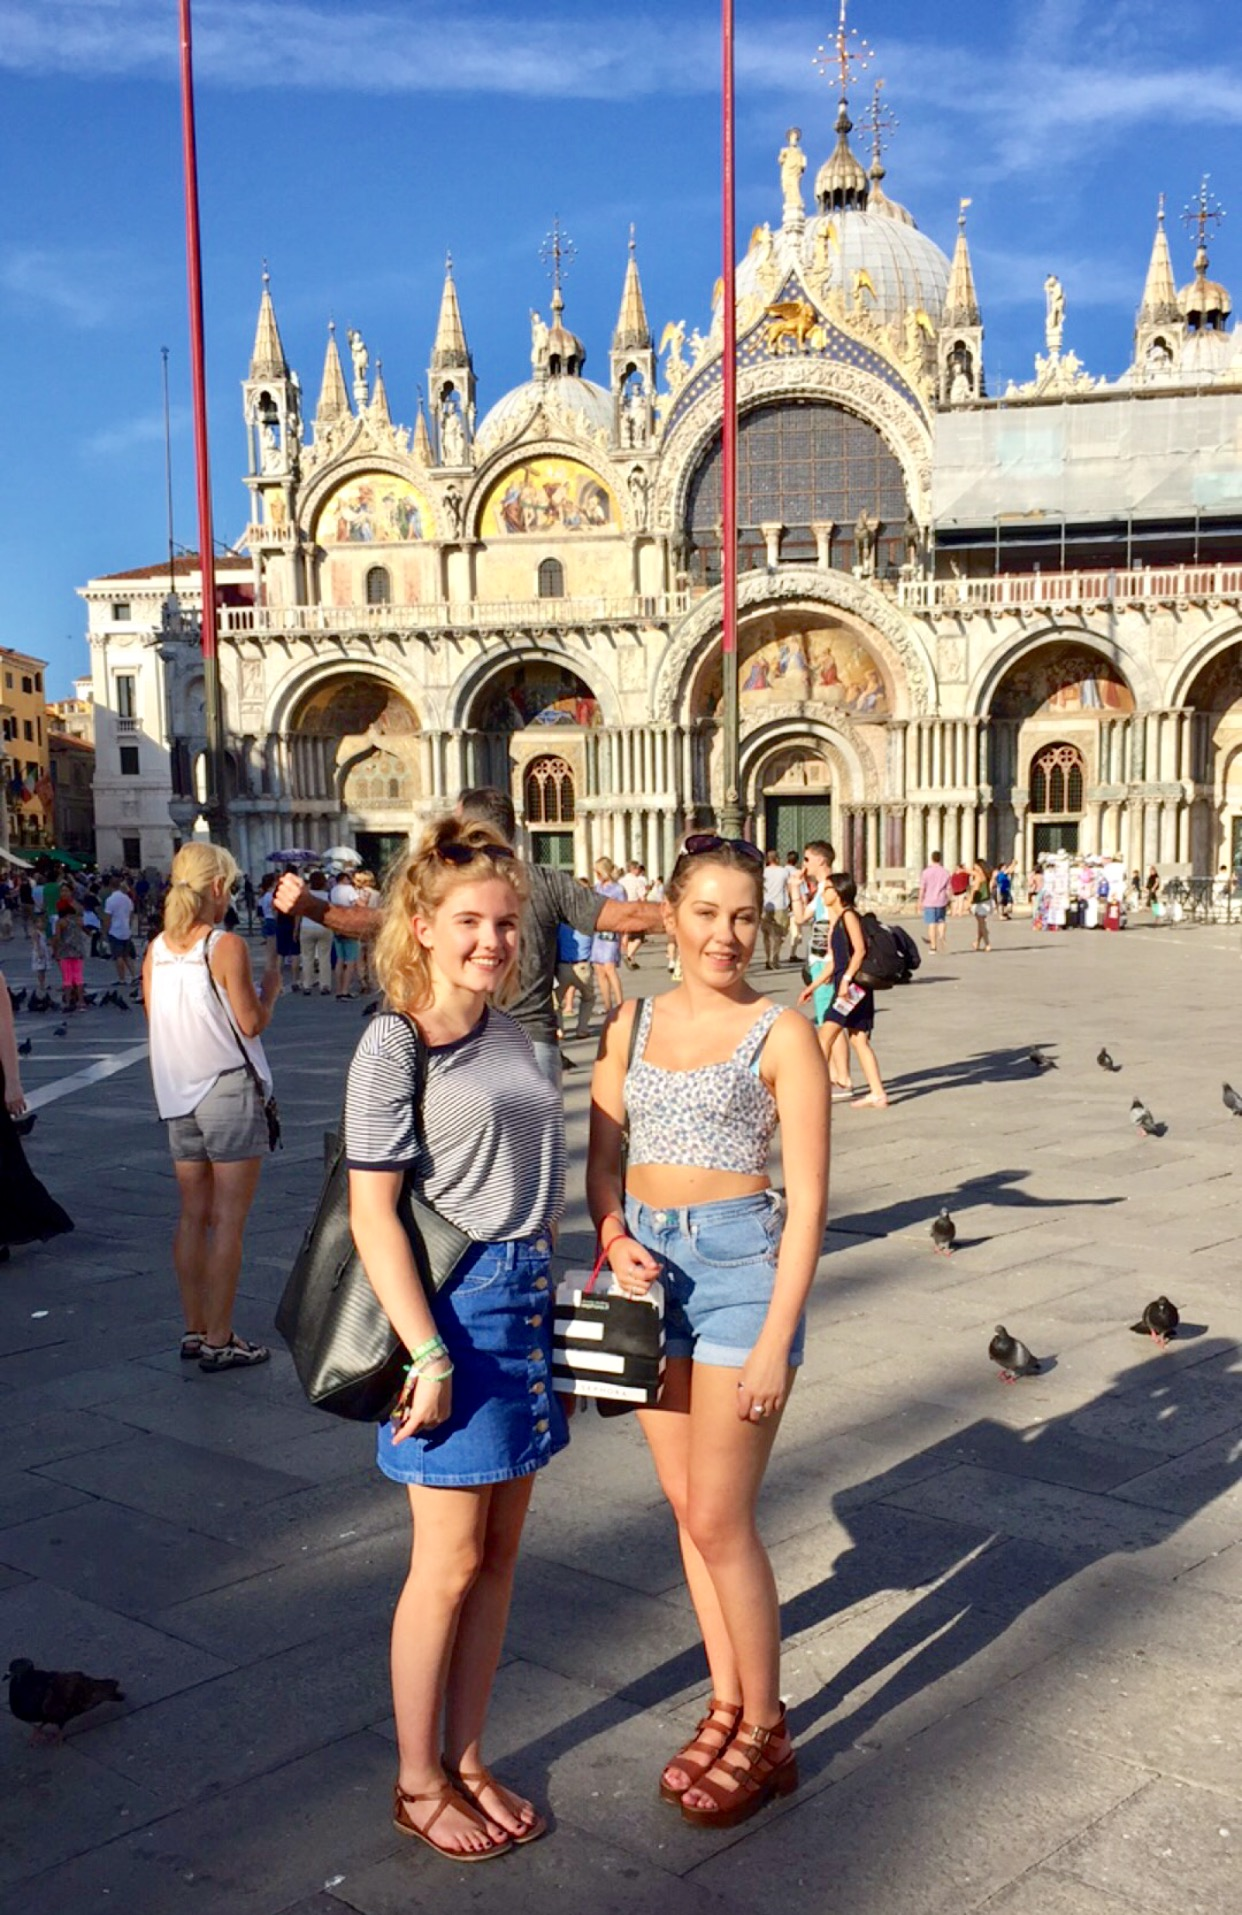 venice-in-summer-a-city-guide-girls-in-st-marks-square